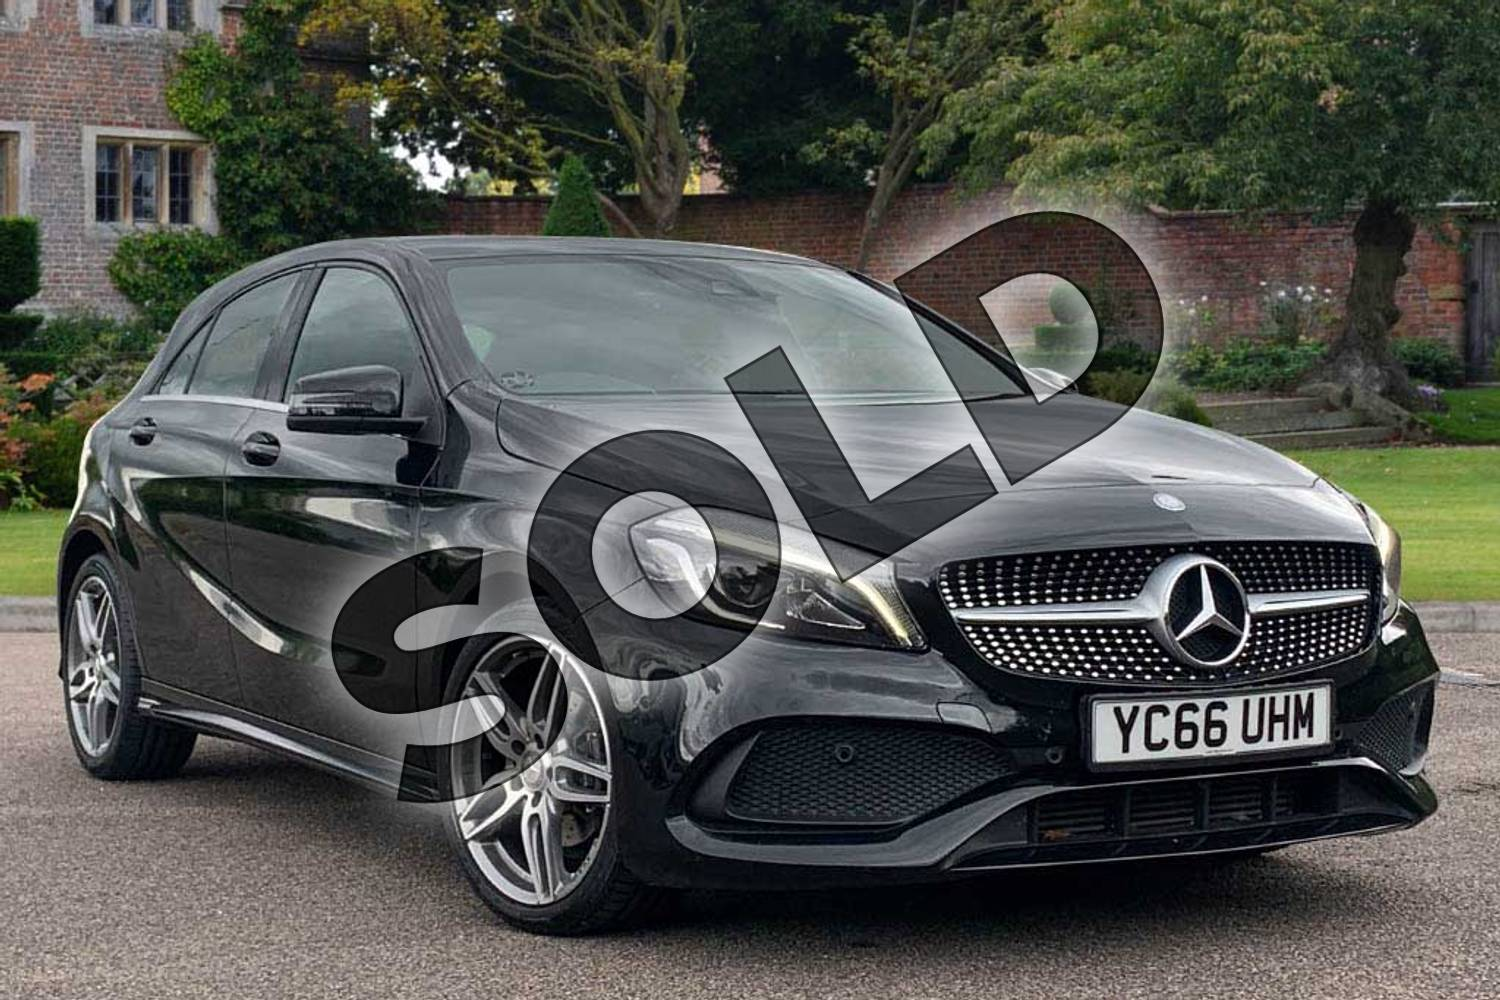 2016 Mercedes-Benz A Class Diesel Hatchback A180d AMG Line Premium 5dr Auto in Cosmos Black at Mercedes-Benz of Lincoln